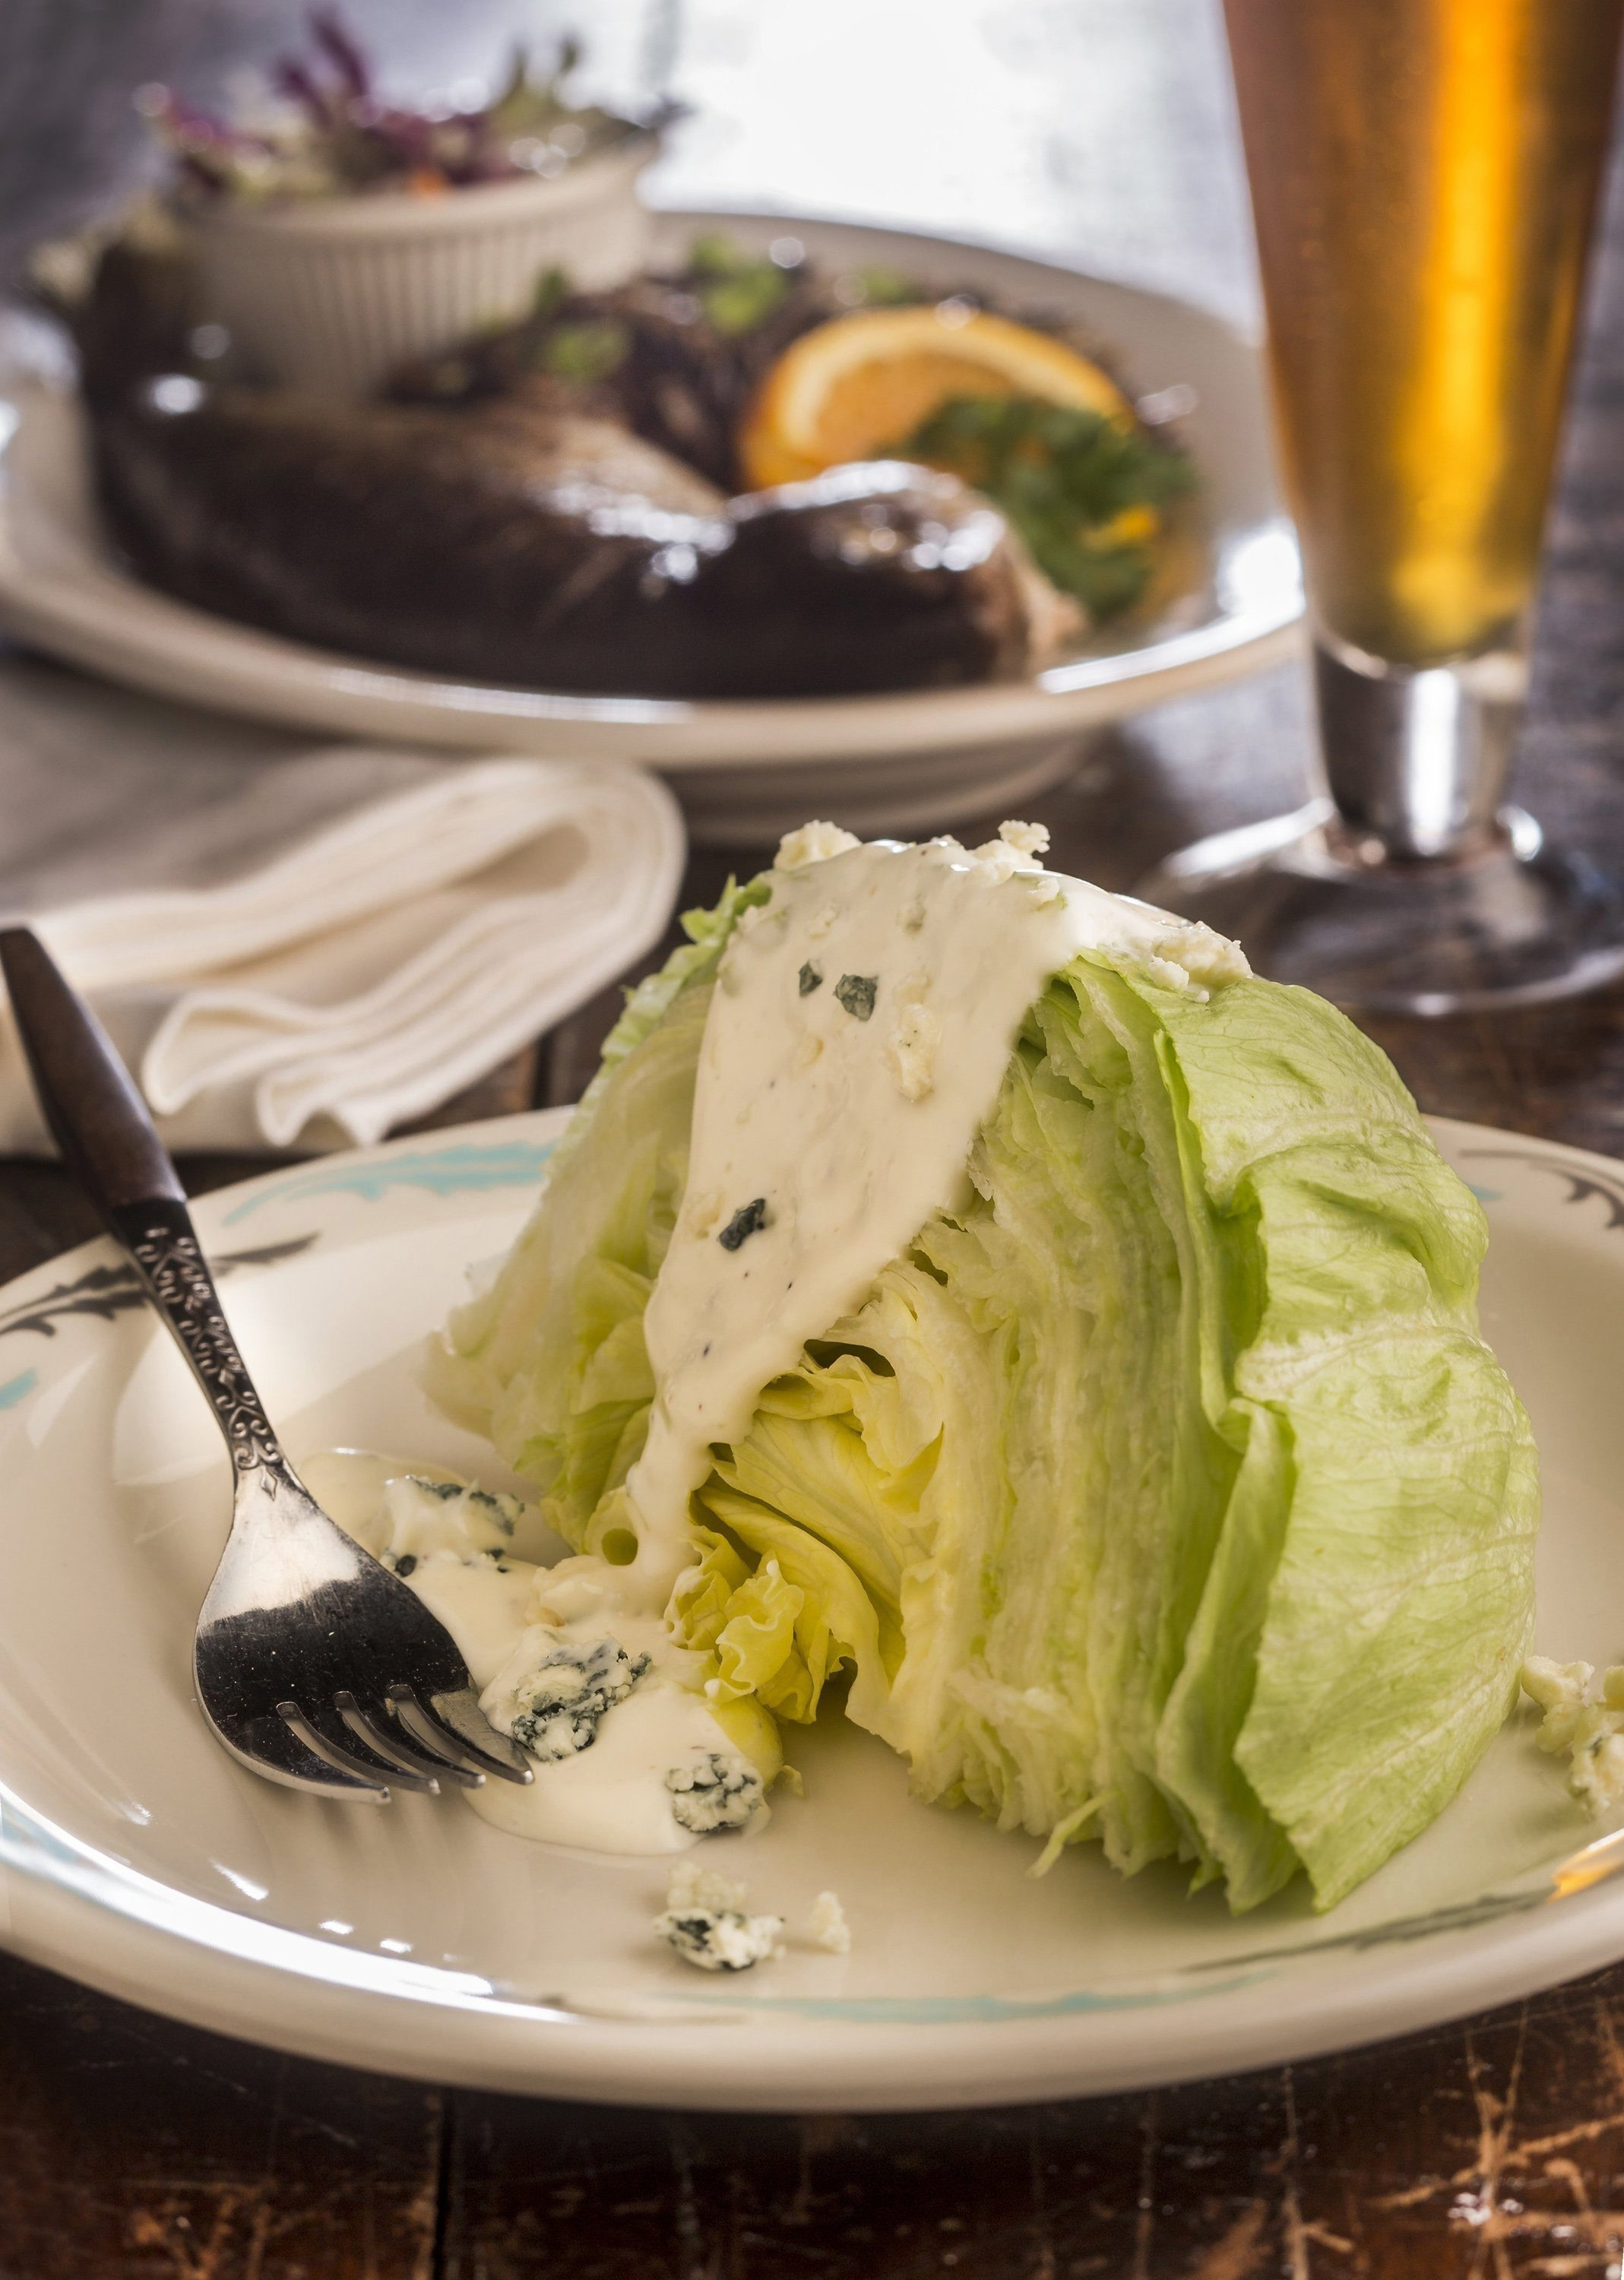 Supper club restaurants, found more in the Midwest, feature home-style food and are so retro they border on hip. Recreate this at home with dishes such as this lettuce wedge with bleu cheese dressing. (Bill Hogan/Chicago Tribune/MCT)